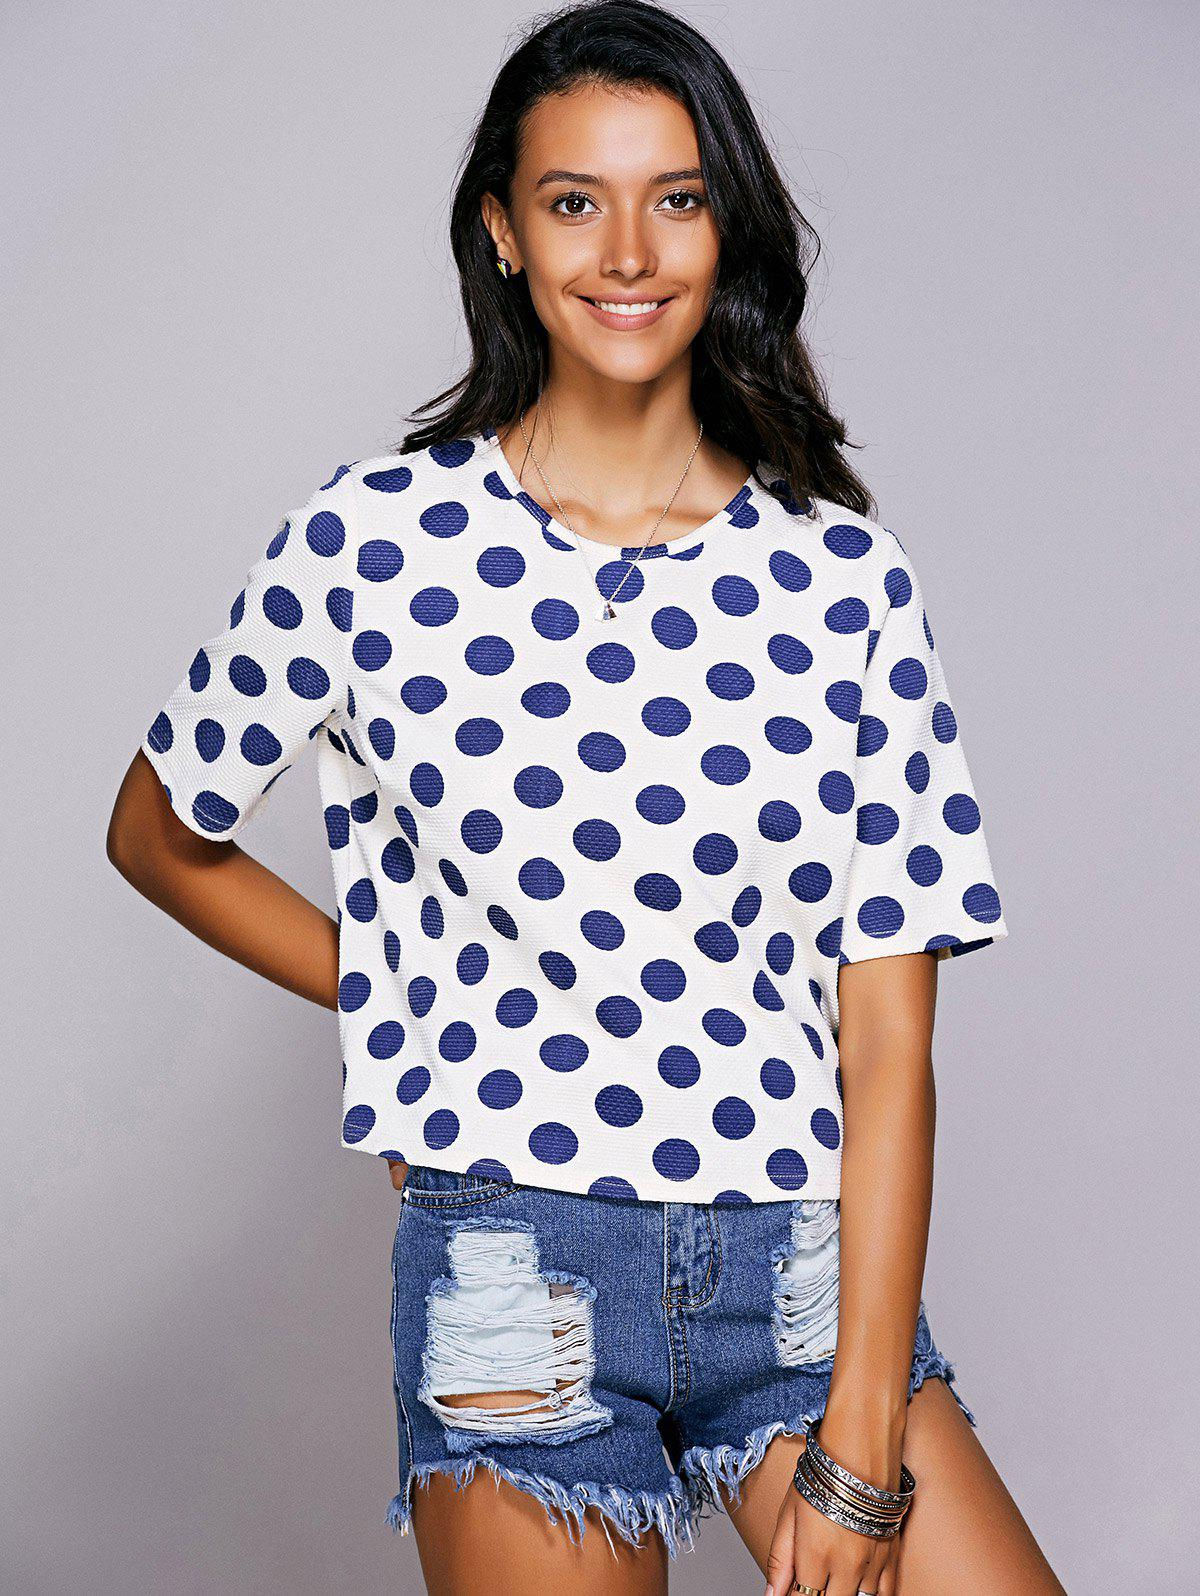 Casual Women's Jewel Neck Polka Dot Short Sleeve Tee ct 2p 25a no nc ac220v home ac contactor often open ct1 25 25a lyn brand